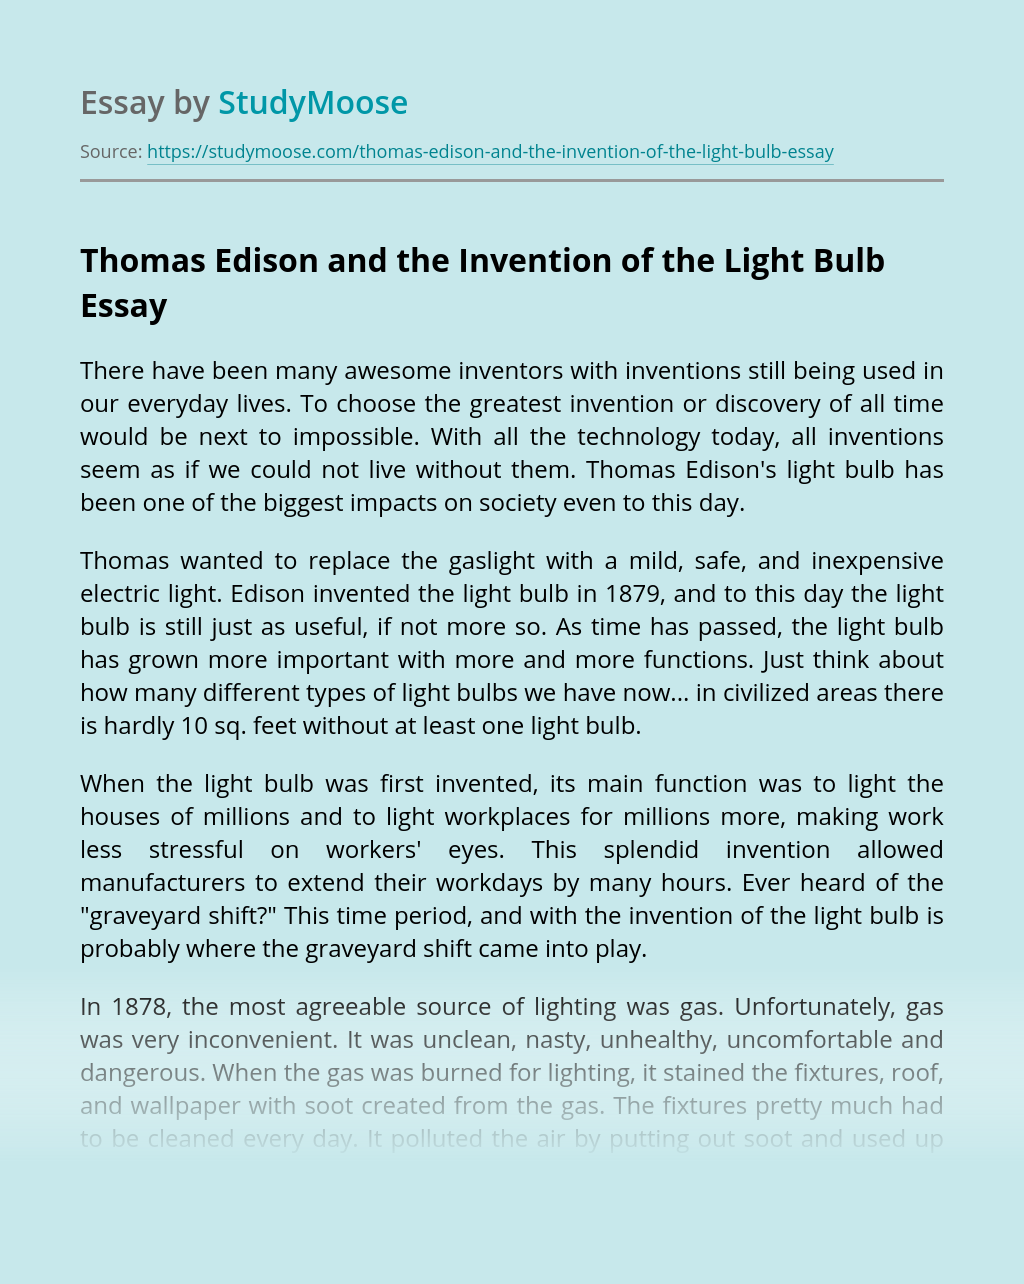 Thomas Edison and the Invention of the Light Bulb